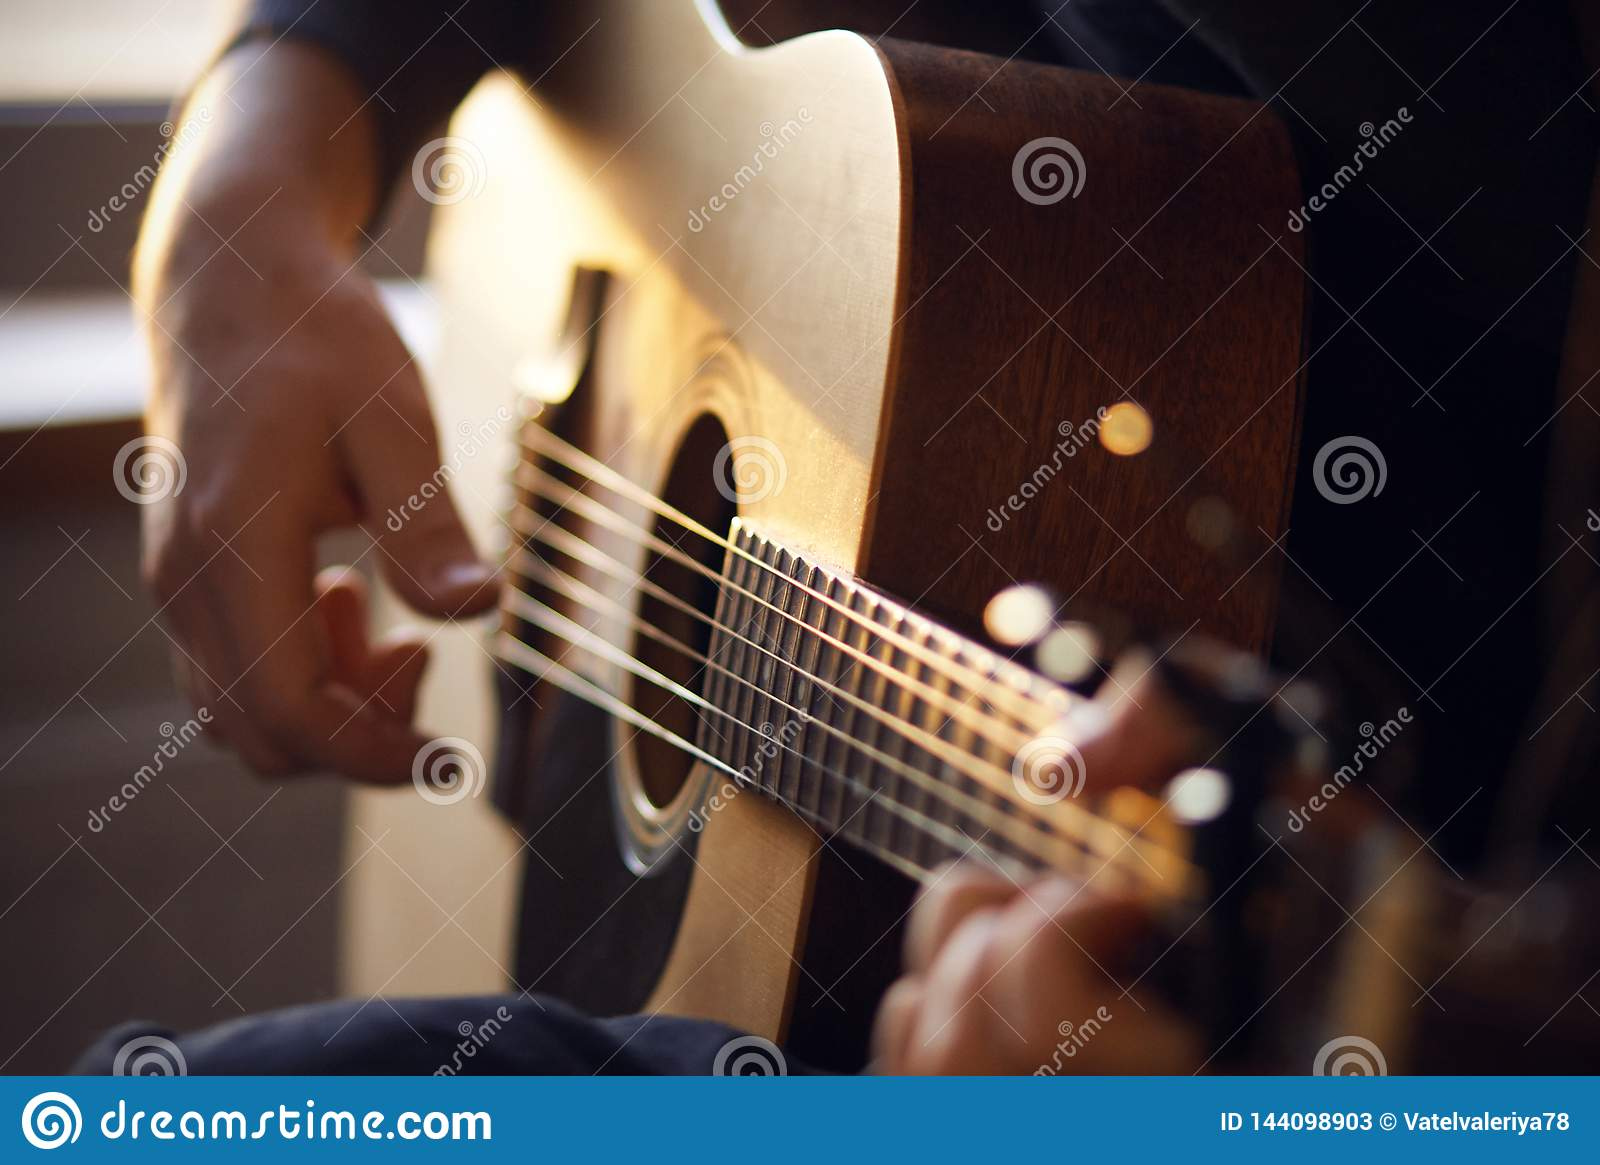 Sunlight illuminates the guitarist, playing a melody on a guitar